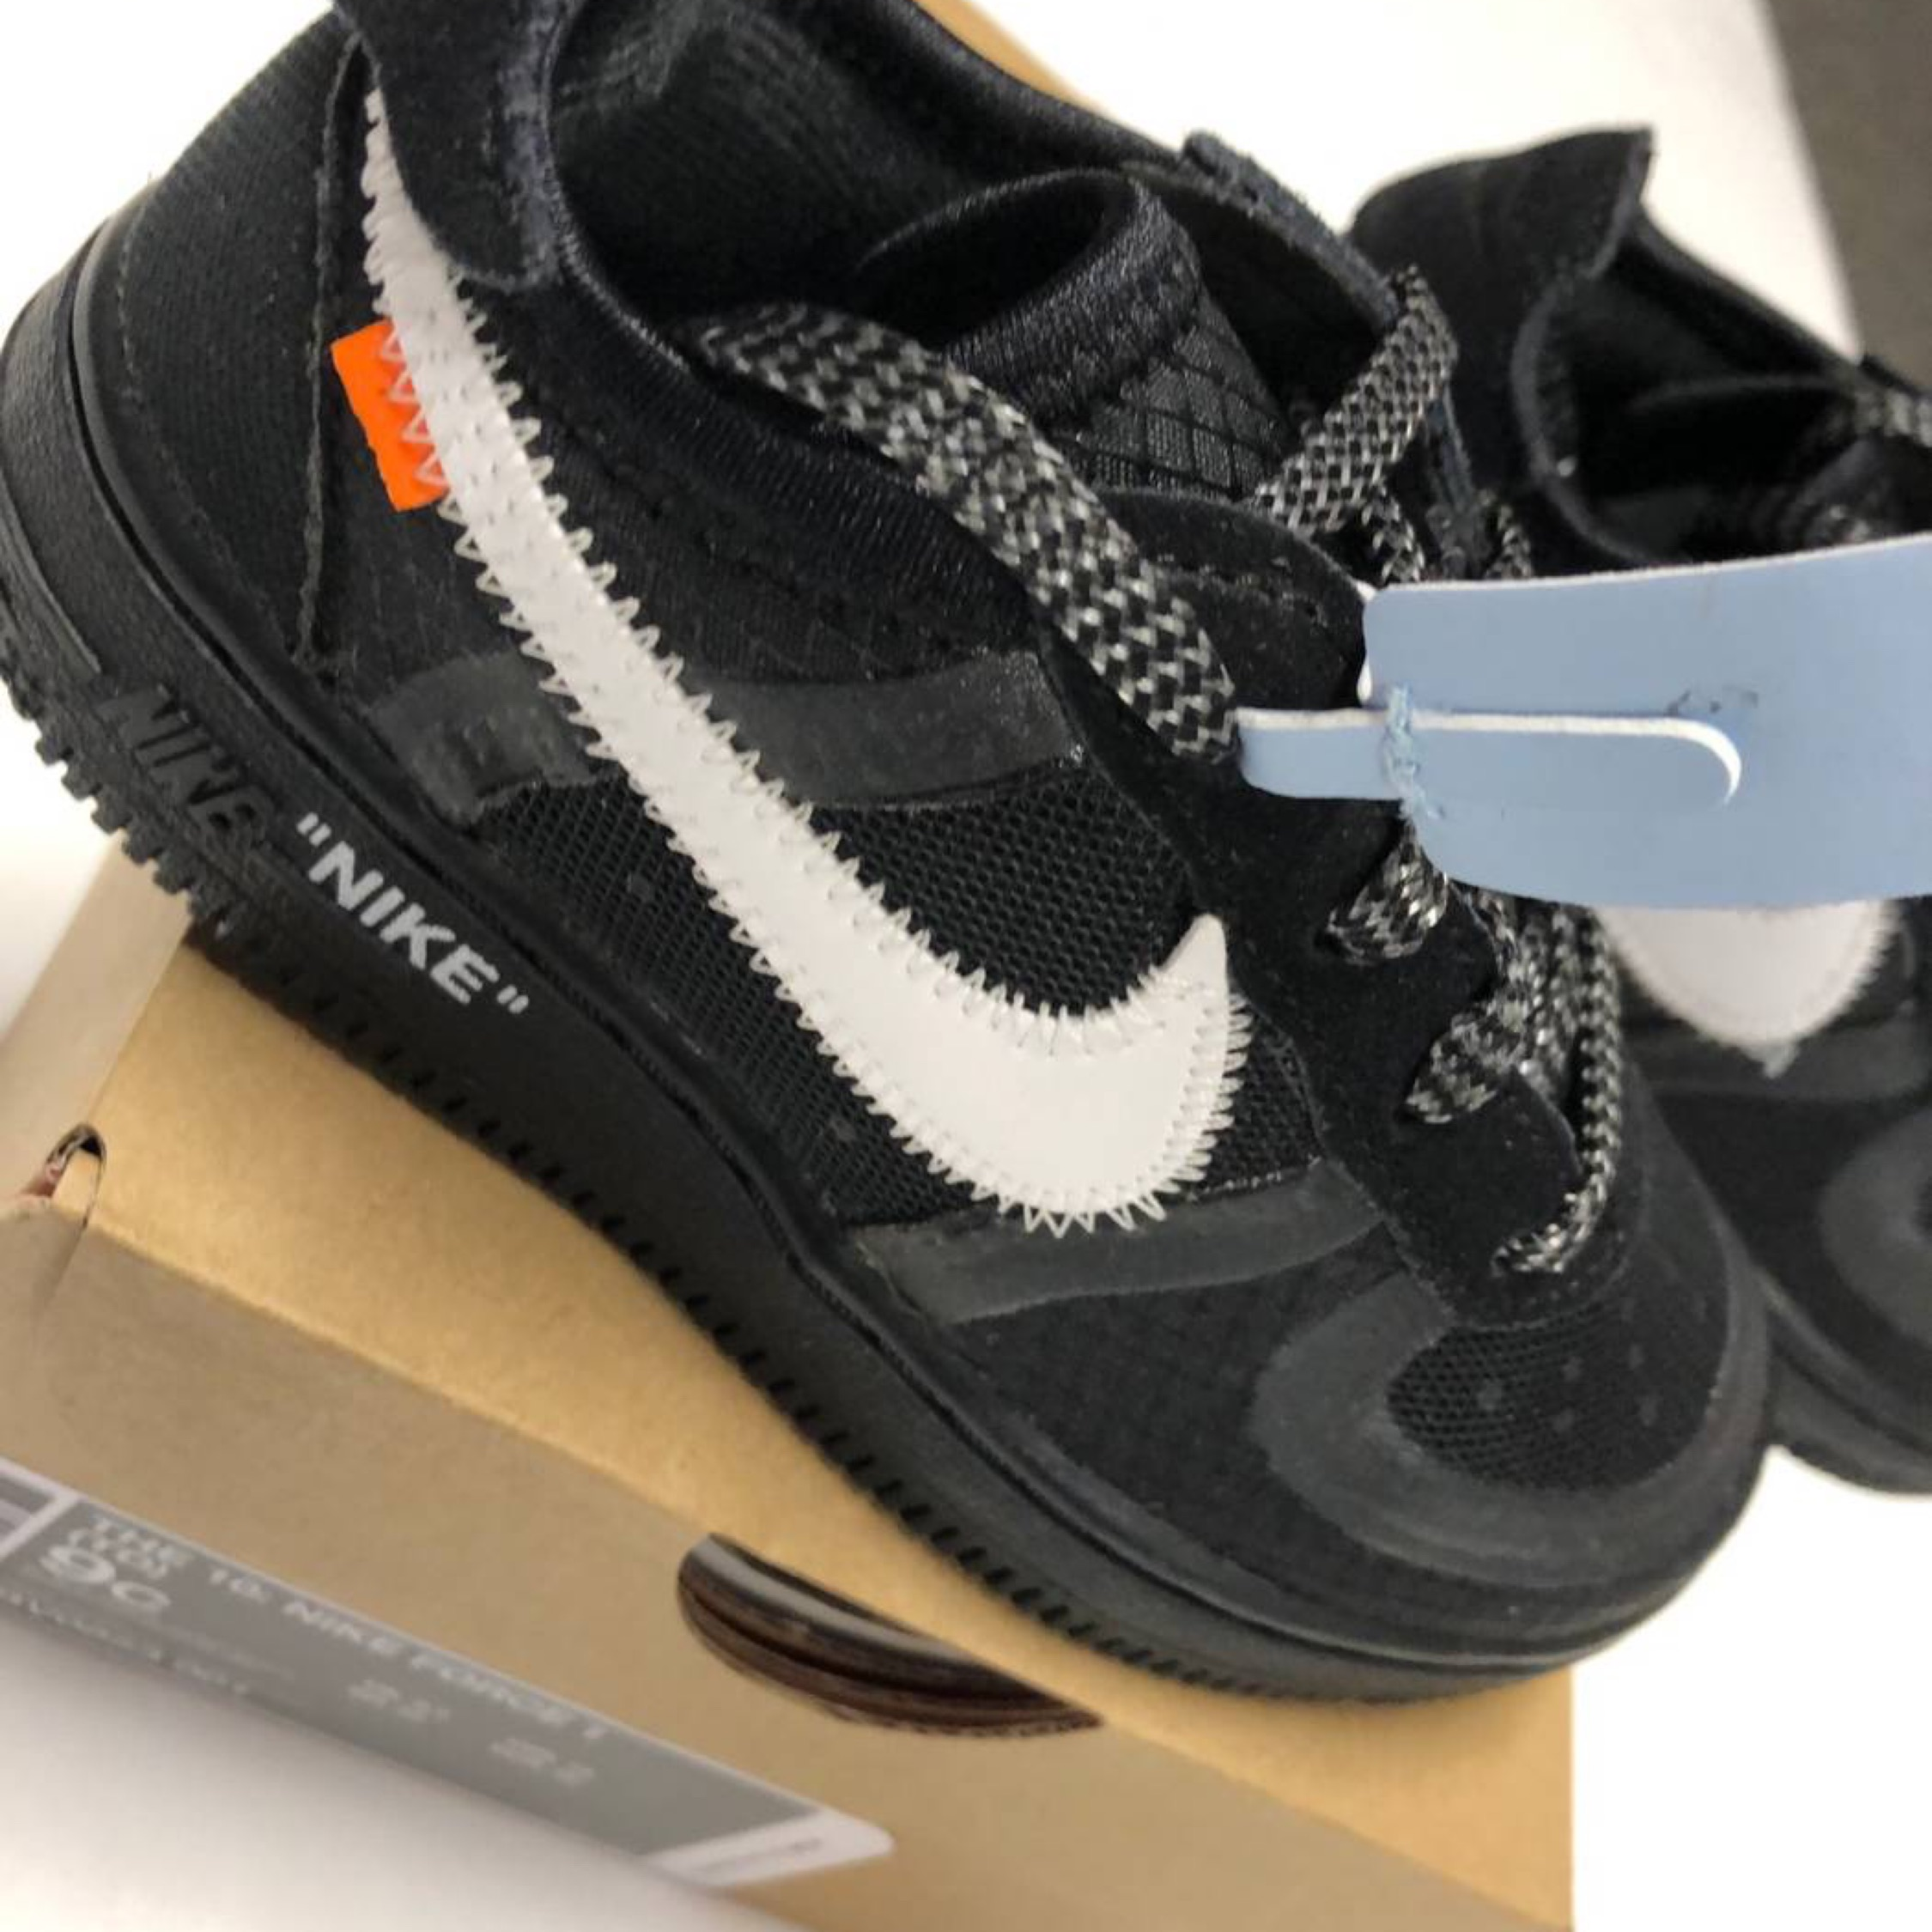 new products 5a219 9ec2e New Deadstock Nike X Off-White Af1 Size 9 Children